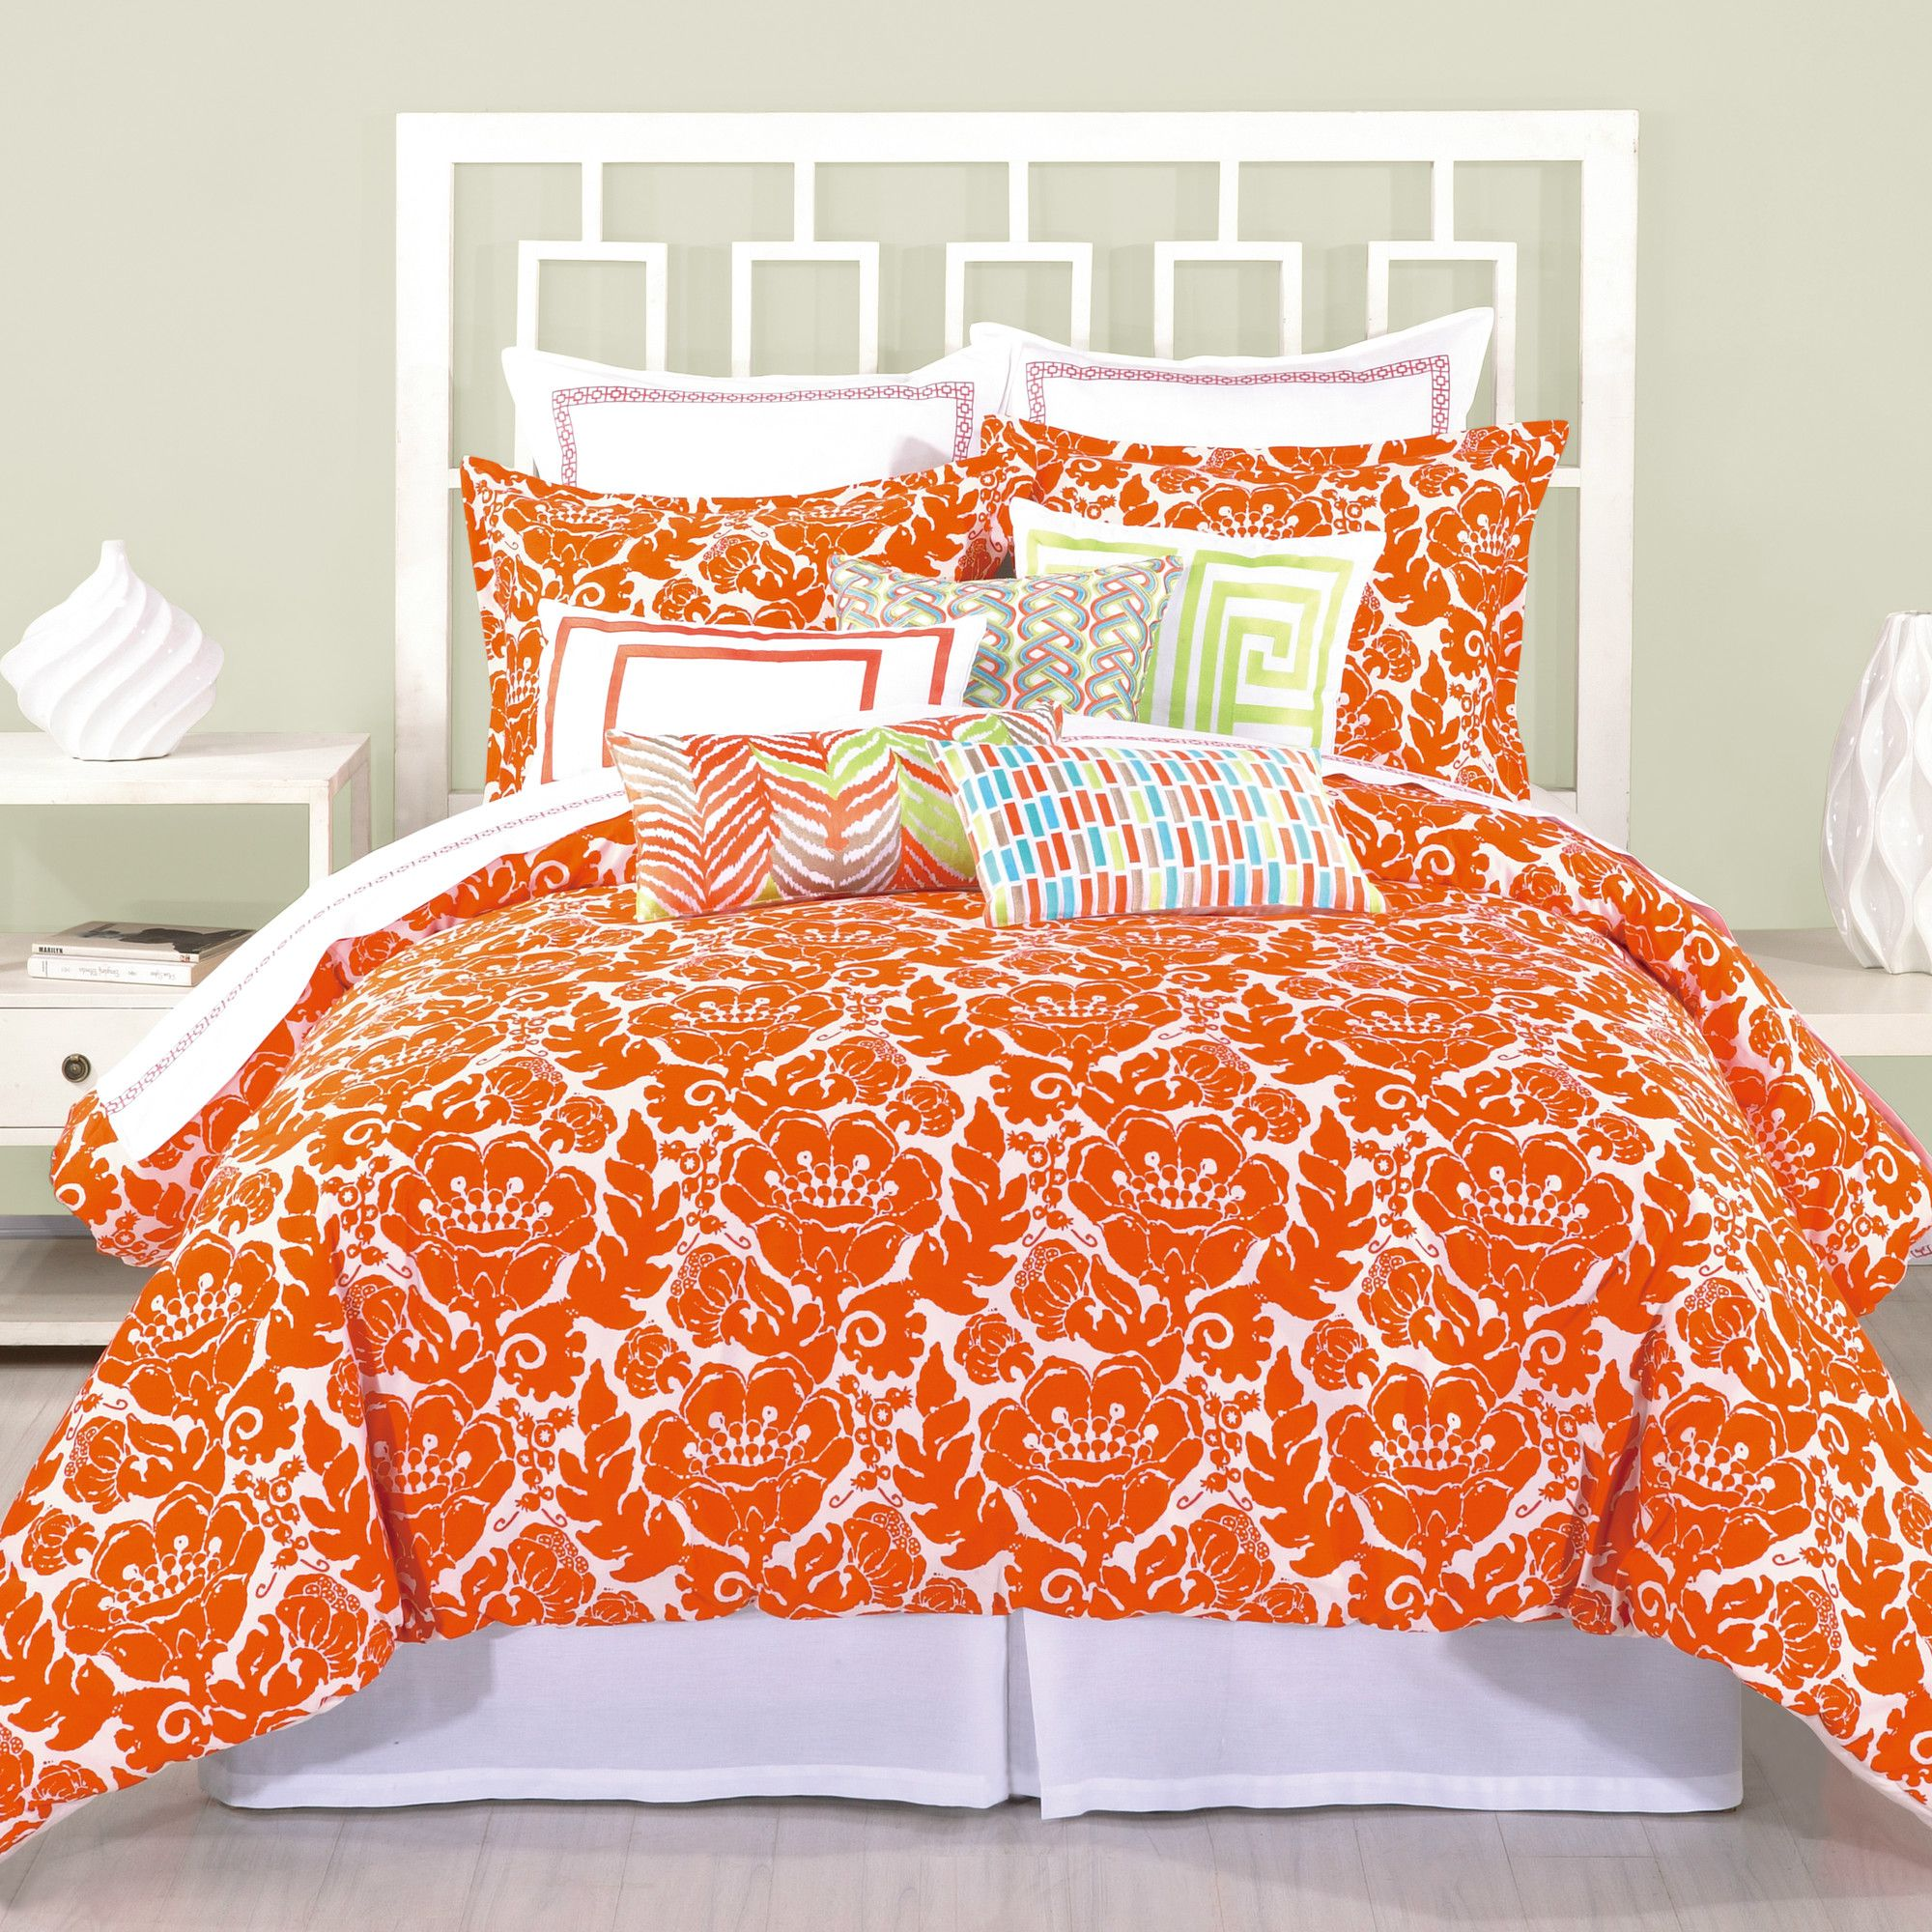 qlt p prod set metaphor orange wid hei king sets comforter aspect